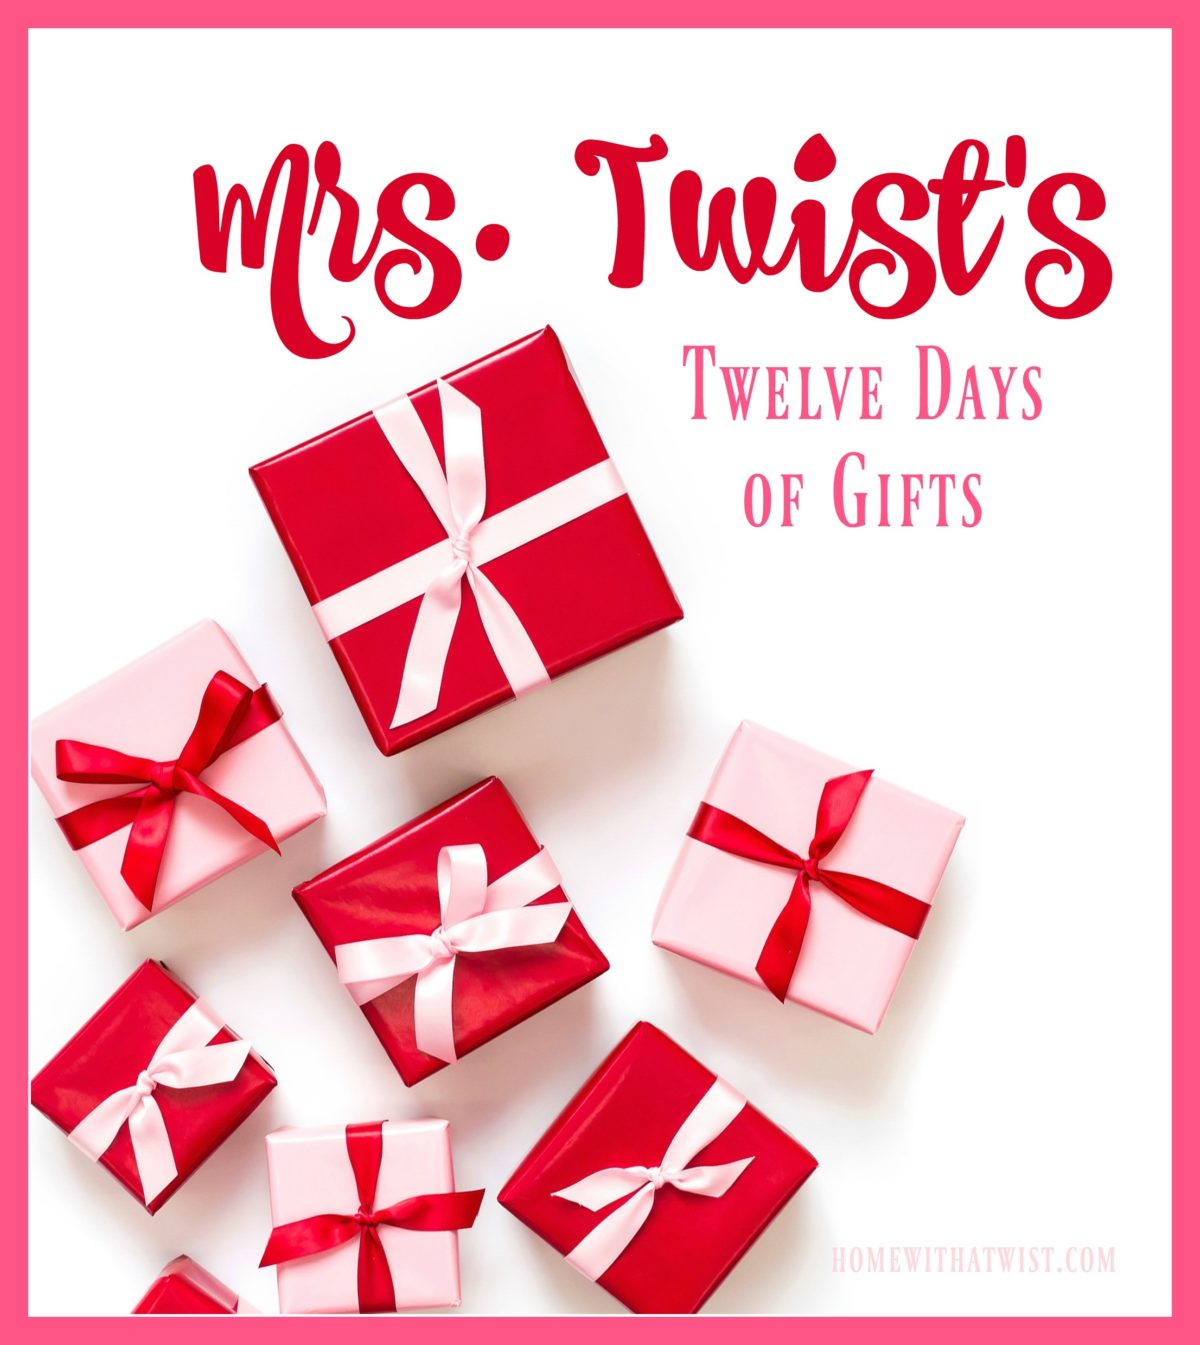 Mrs. Twist's 12 Days of Gifts — Google Hub and Carl the Snowman